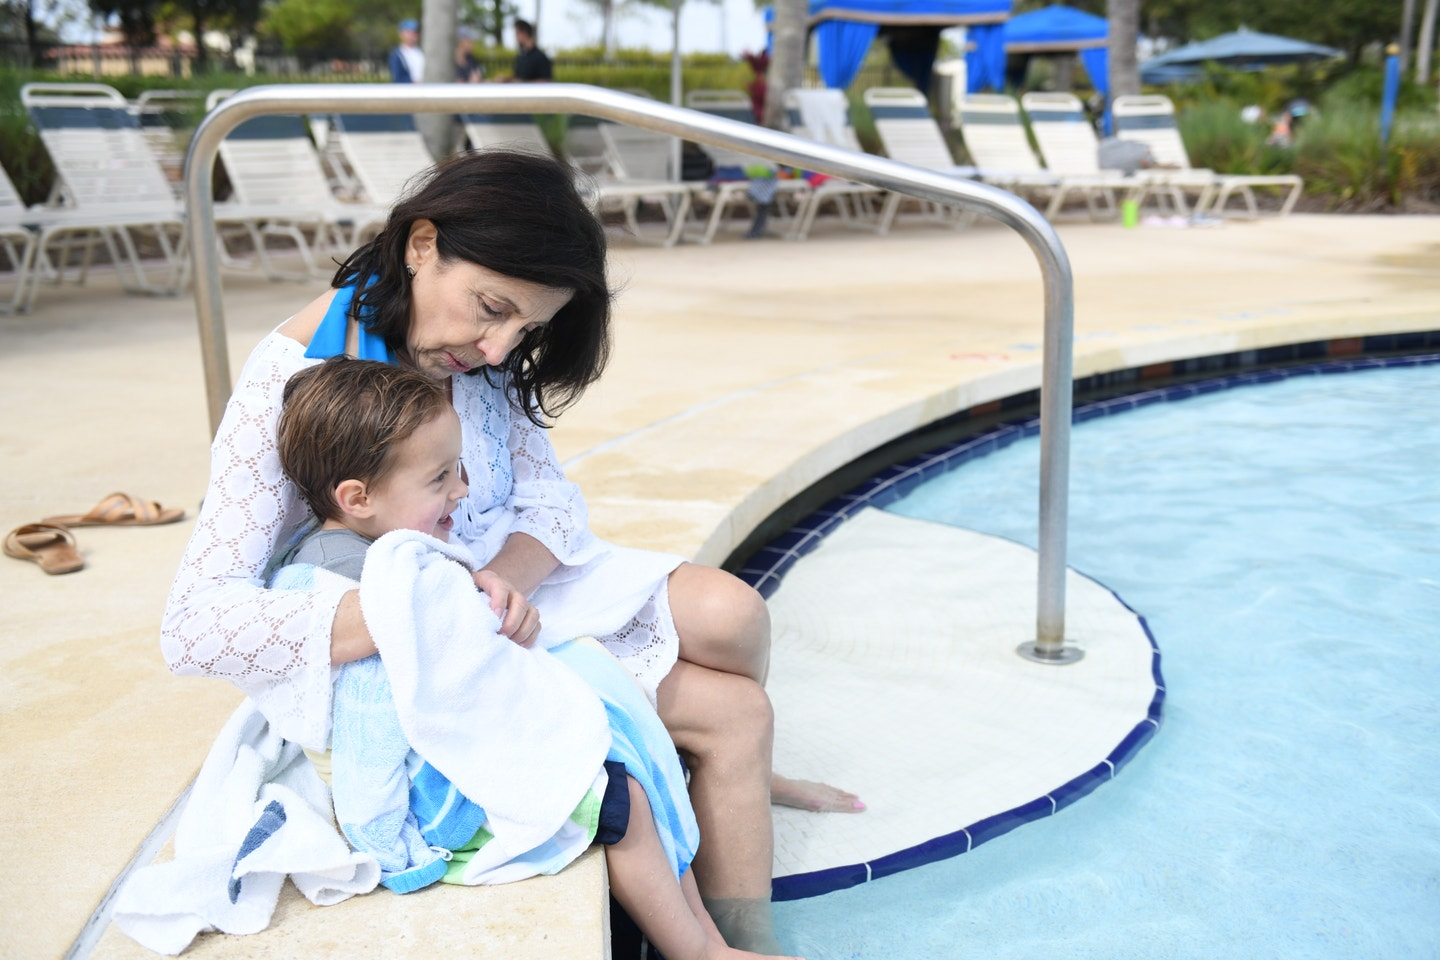 Mother with her child at a resort pool